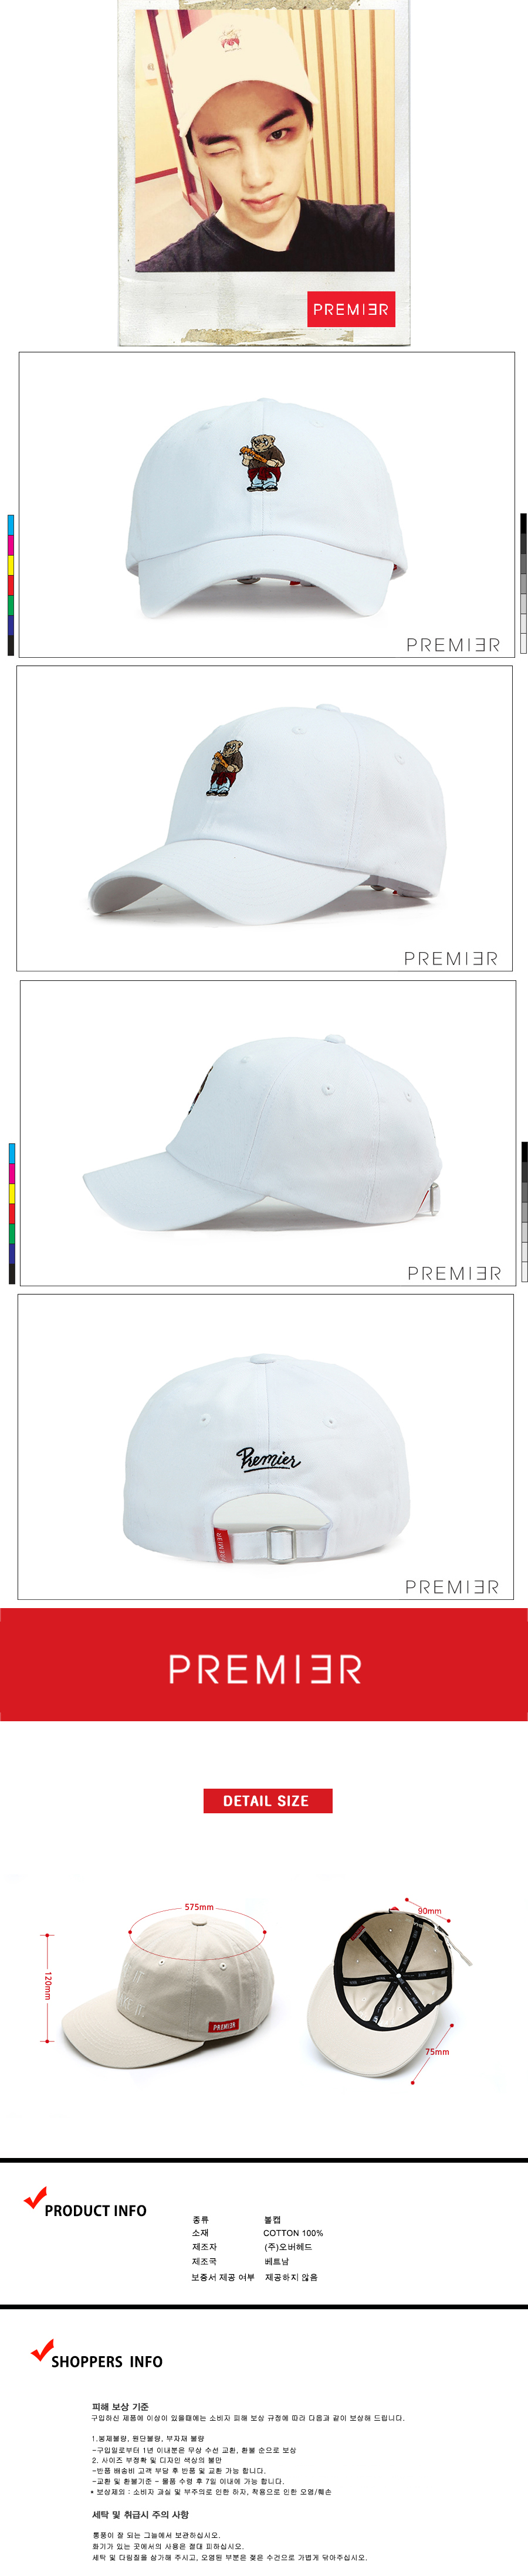 [ PREMIER ] [Premier] Ball Cap Bad Bear White (P923)